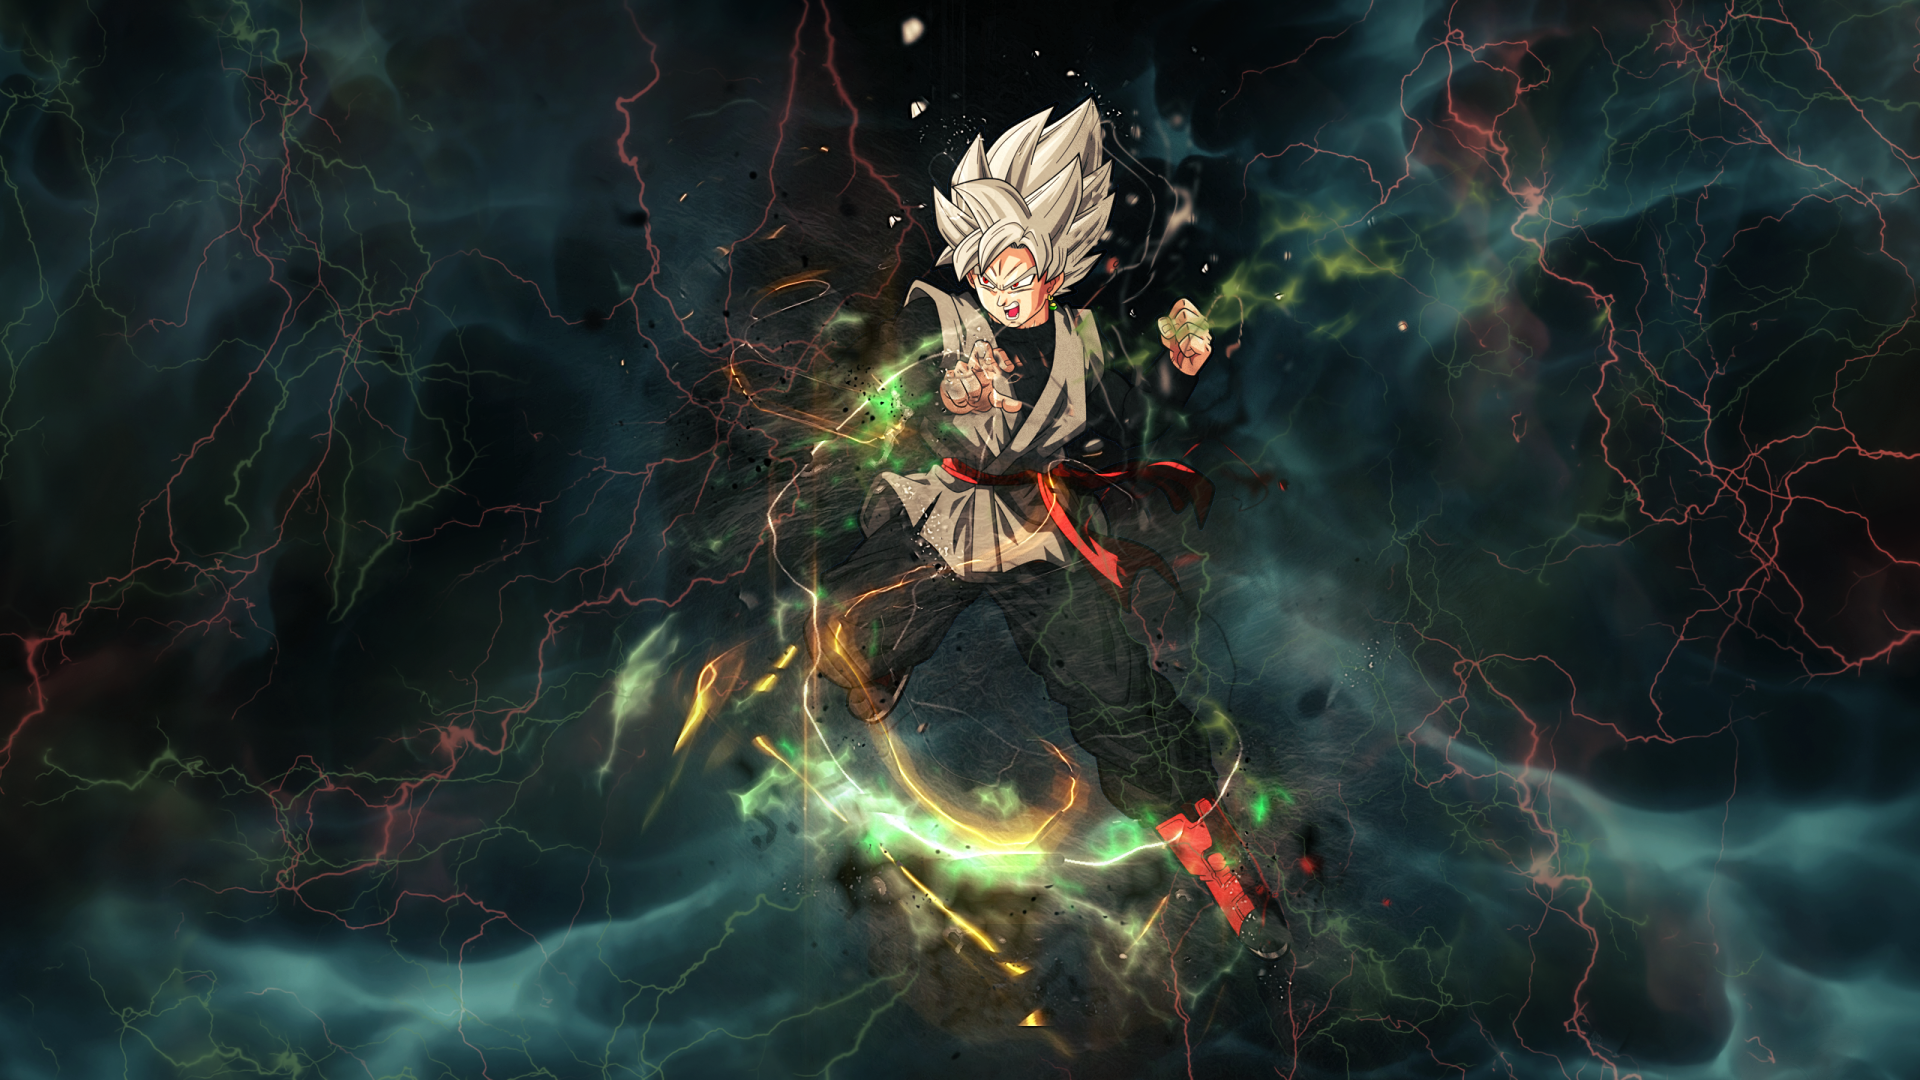 Background Images Wallpaper Abyss: 119 Black Goku HD Wallpapers